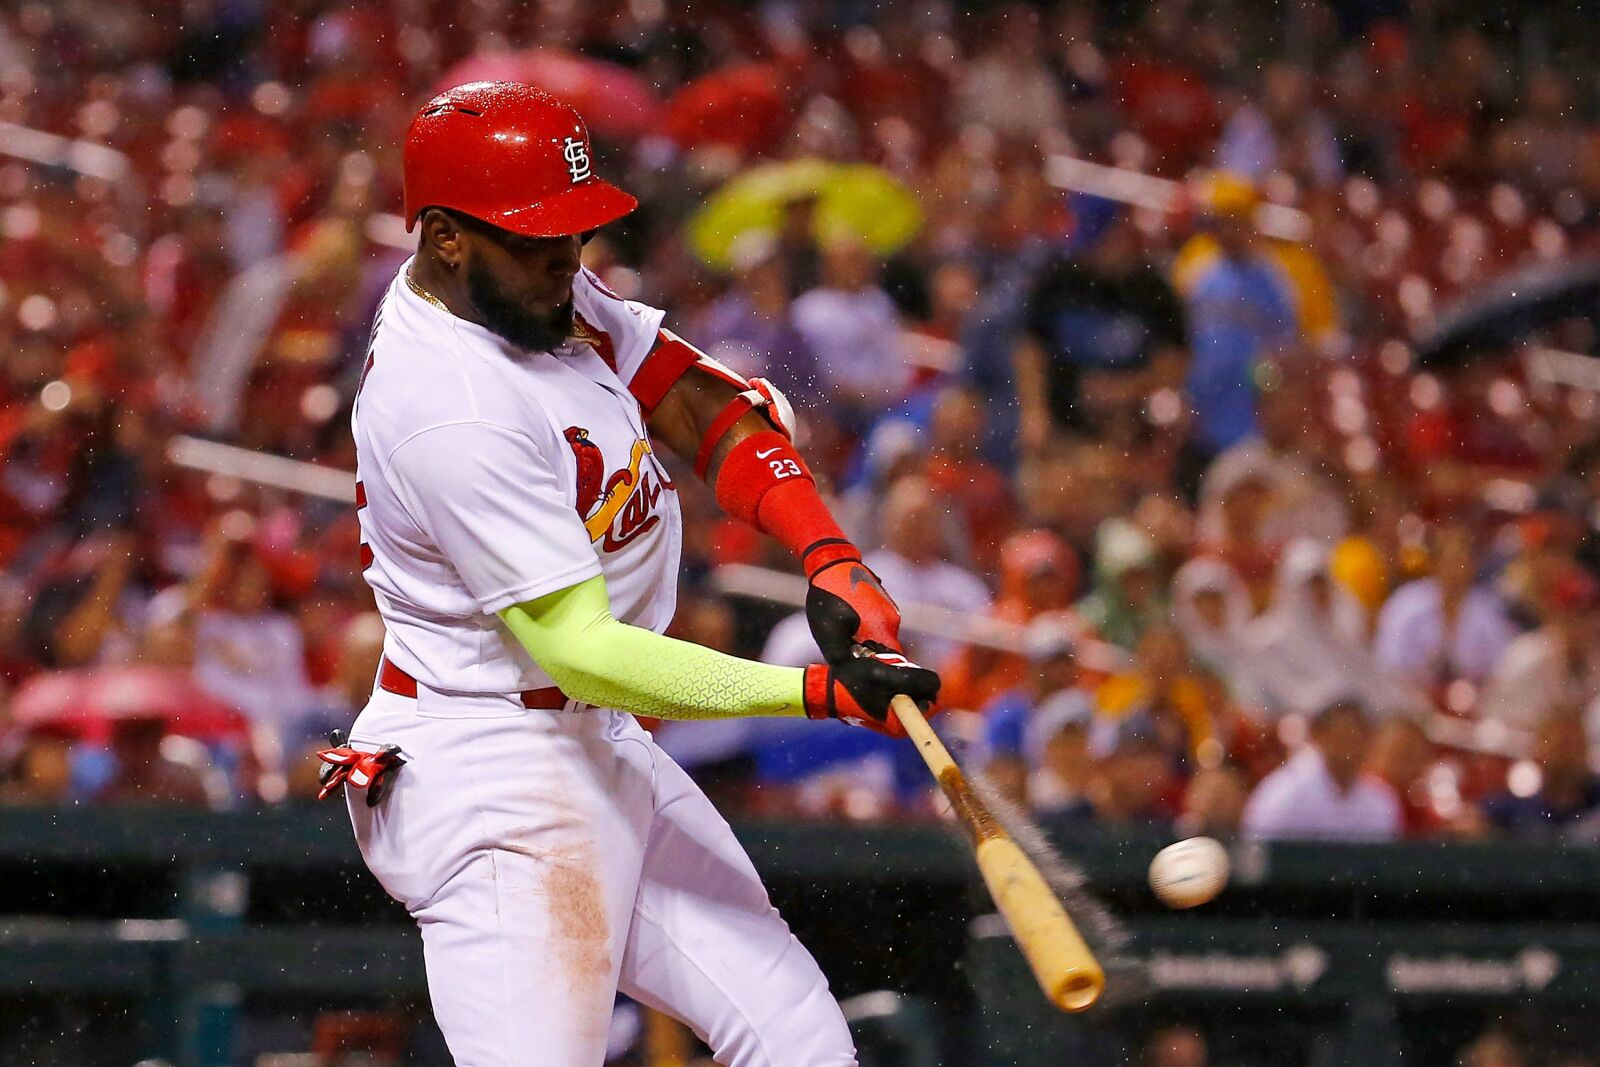 St. Louis Cardinals: Marcell Ozuna is due for a bounceback season